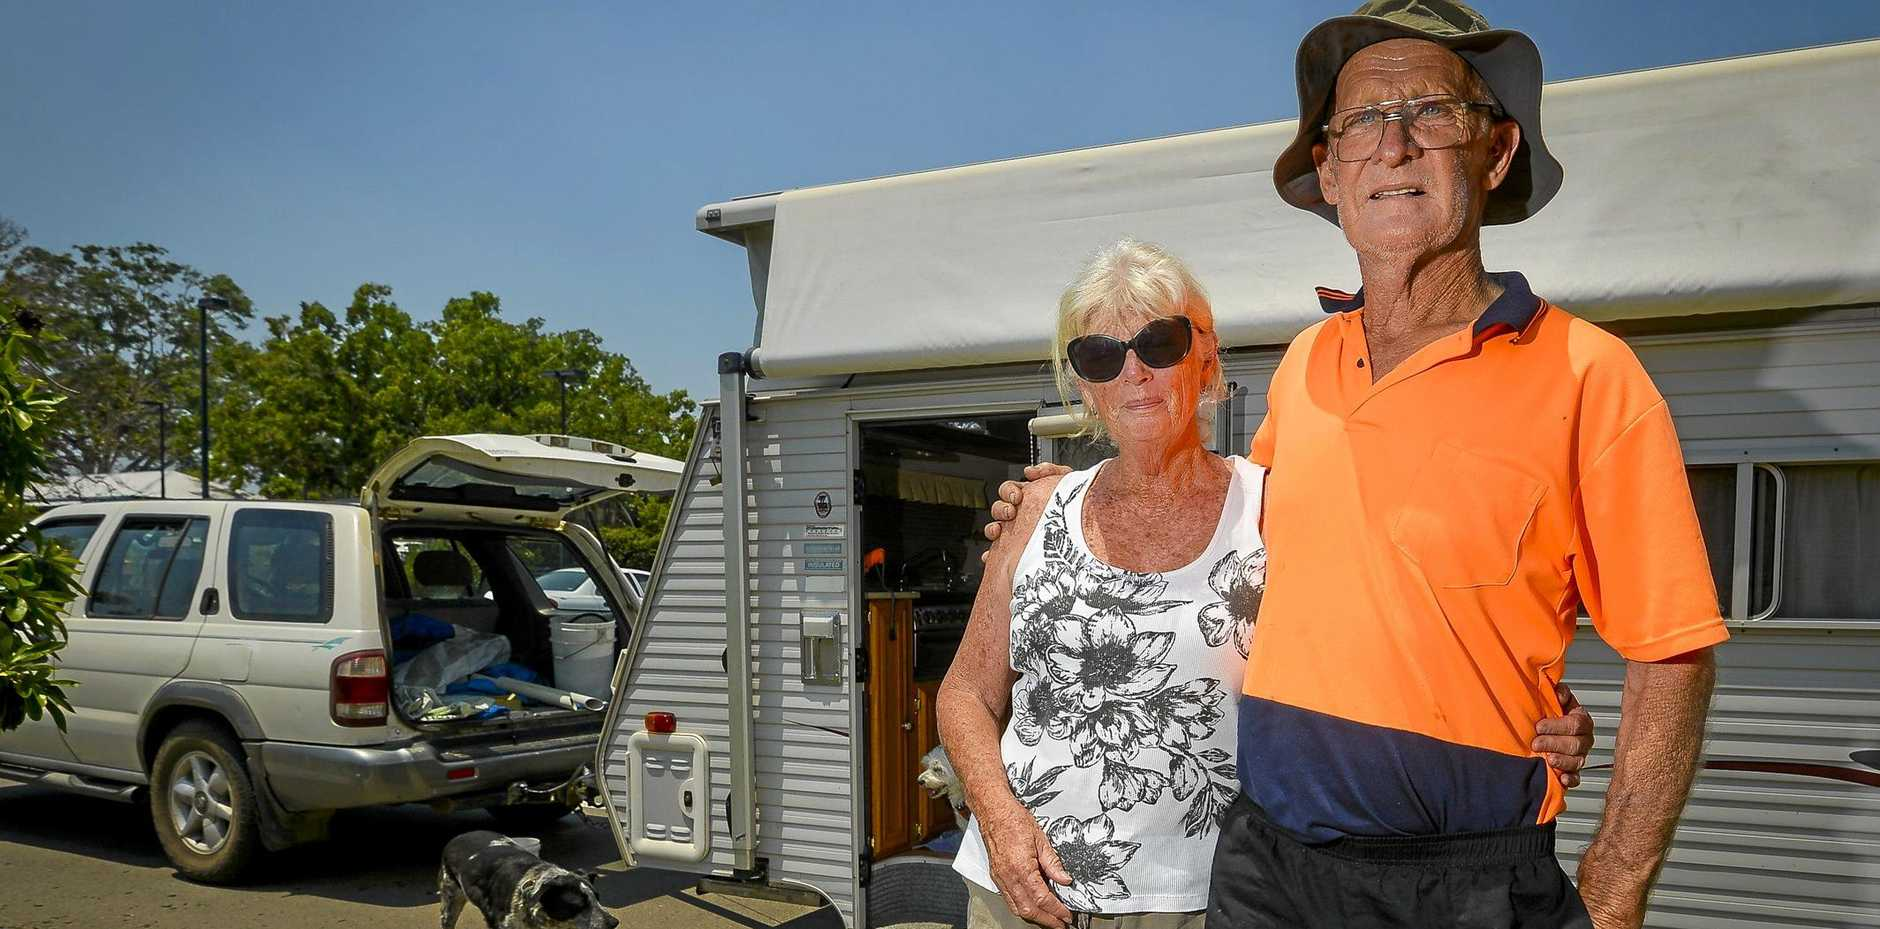 Bob and Debra Wait are living in their caravan opposite the Miriam Vale Community Centre with their 2 dogs, after being forced to evacuate their 40-acre property on Deepwater Road due to an extreme bushfire.